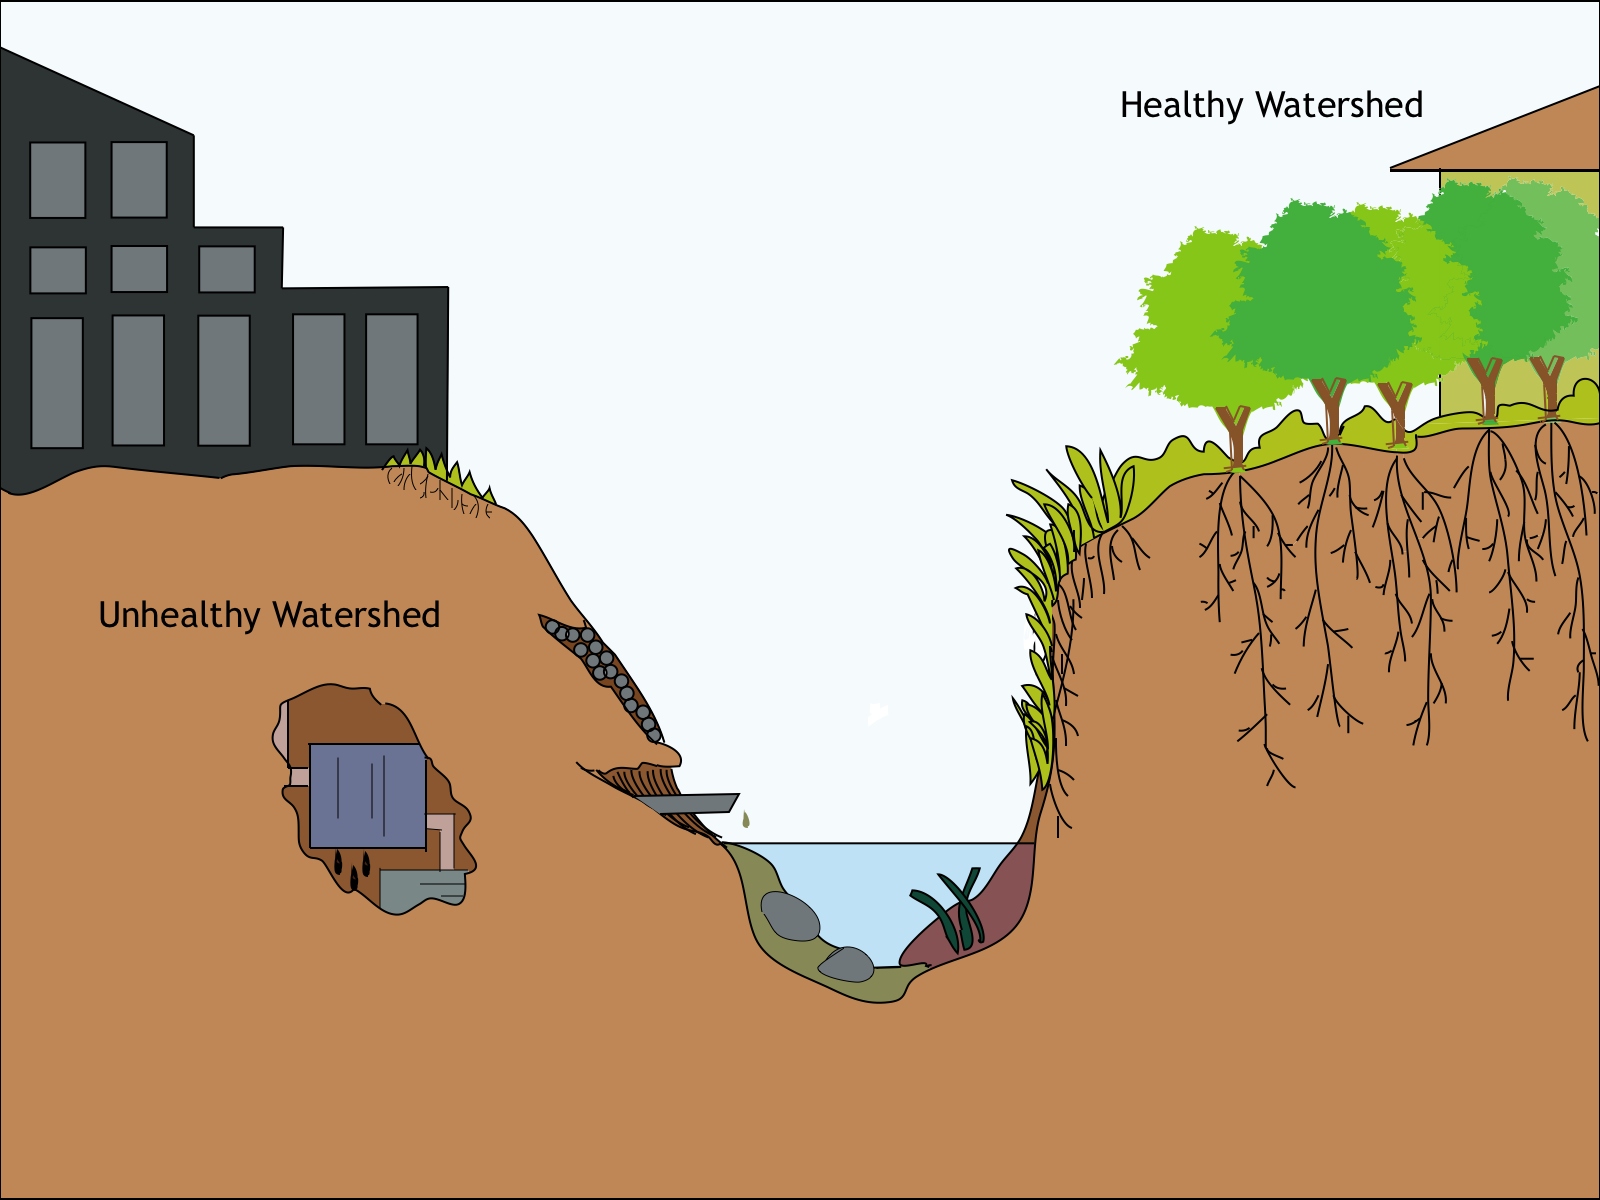 Healthy vs. Unhealthy Watersheds